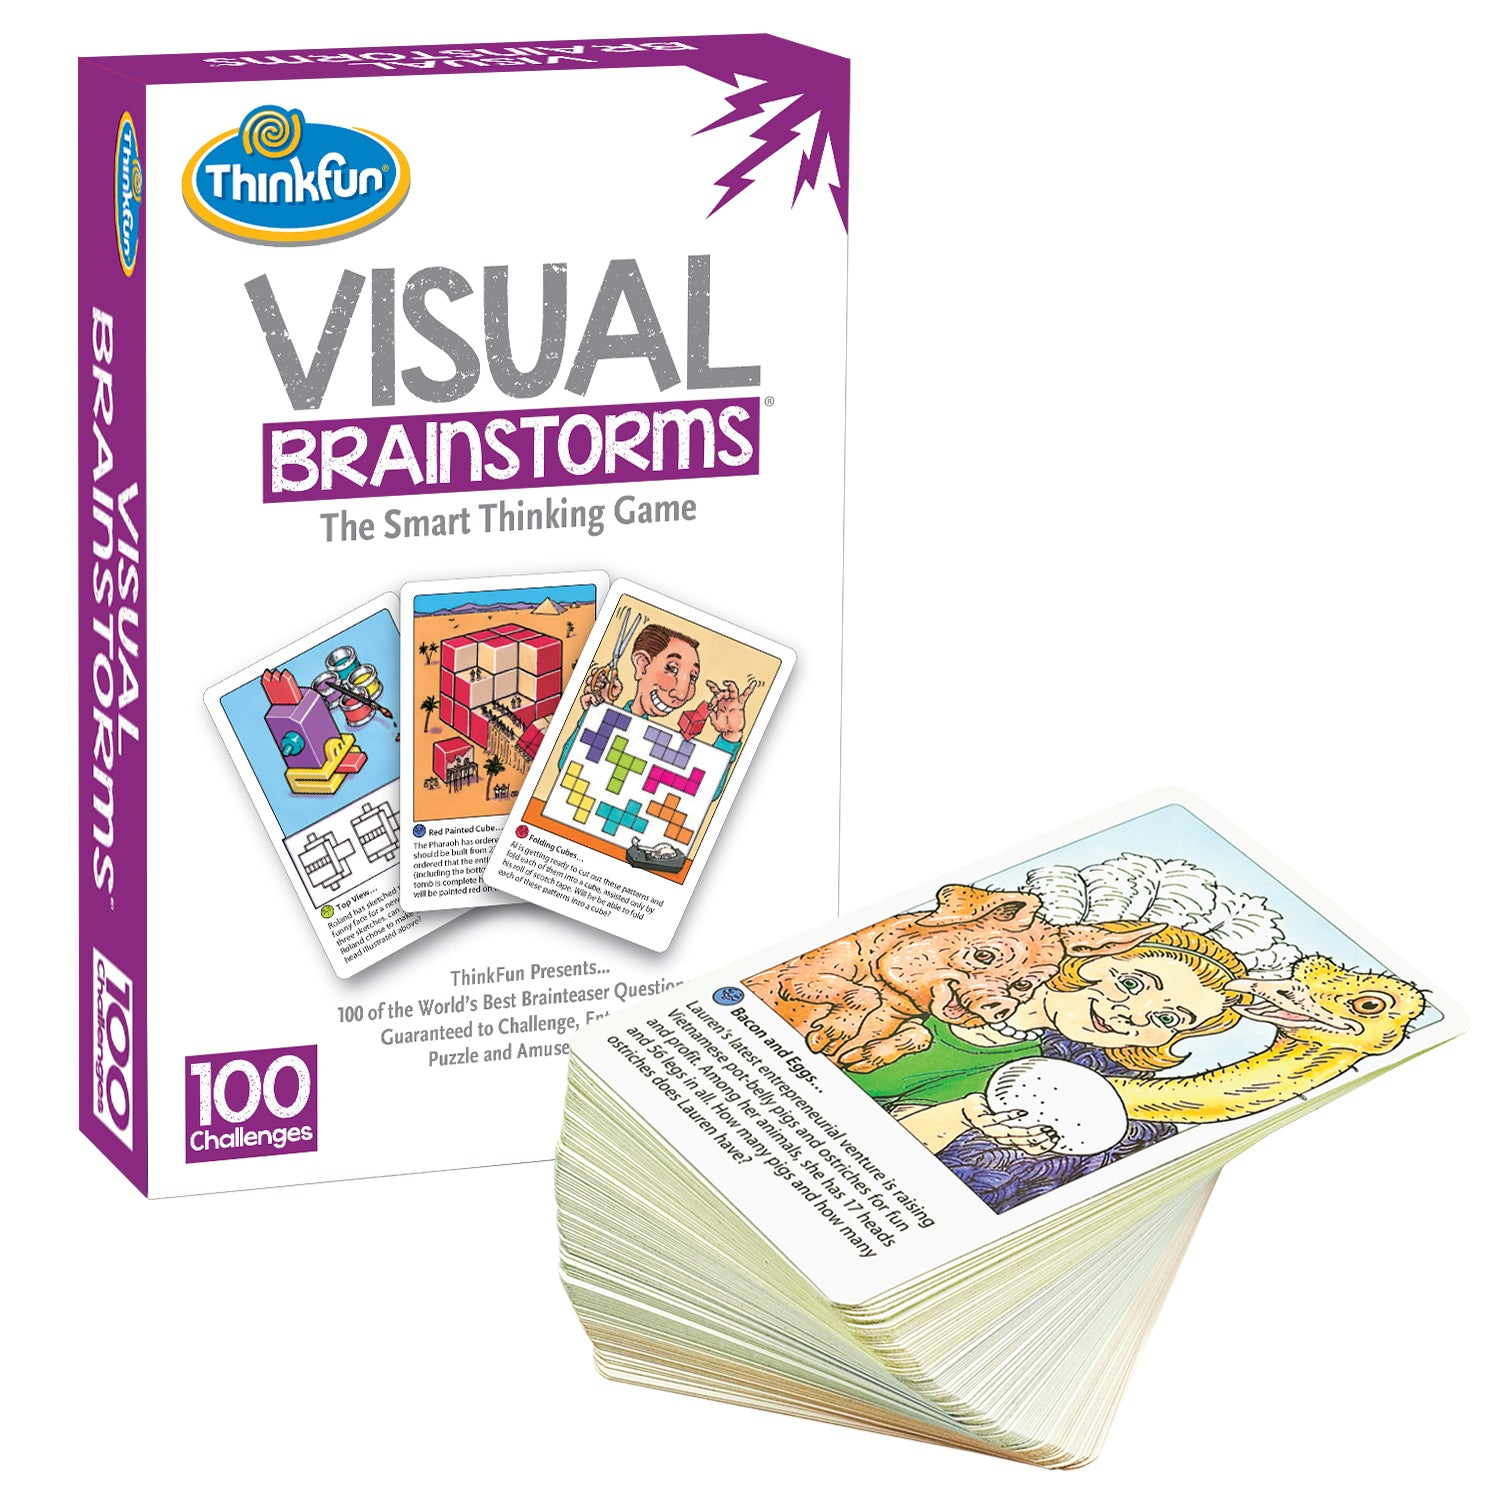 Visual Brainstorms by Thinkfun